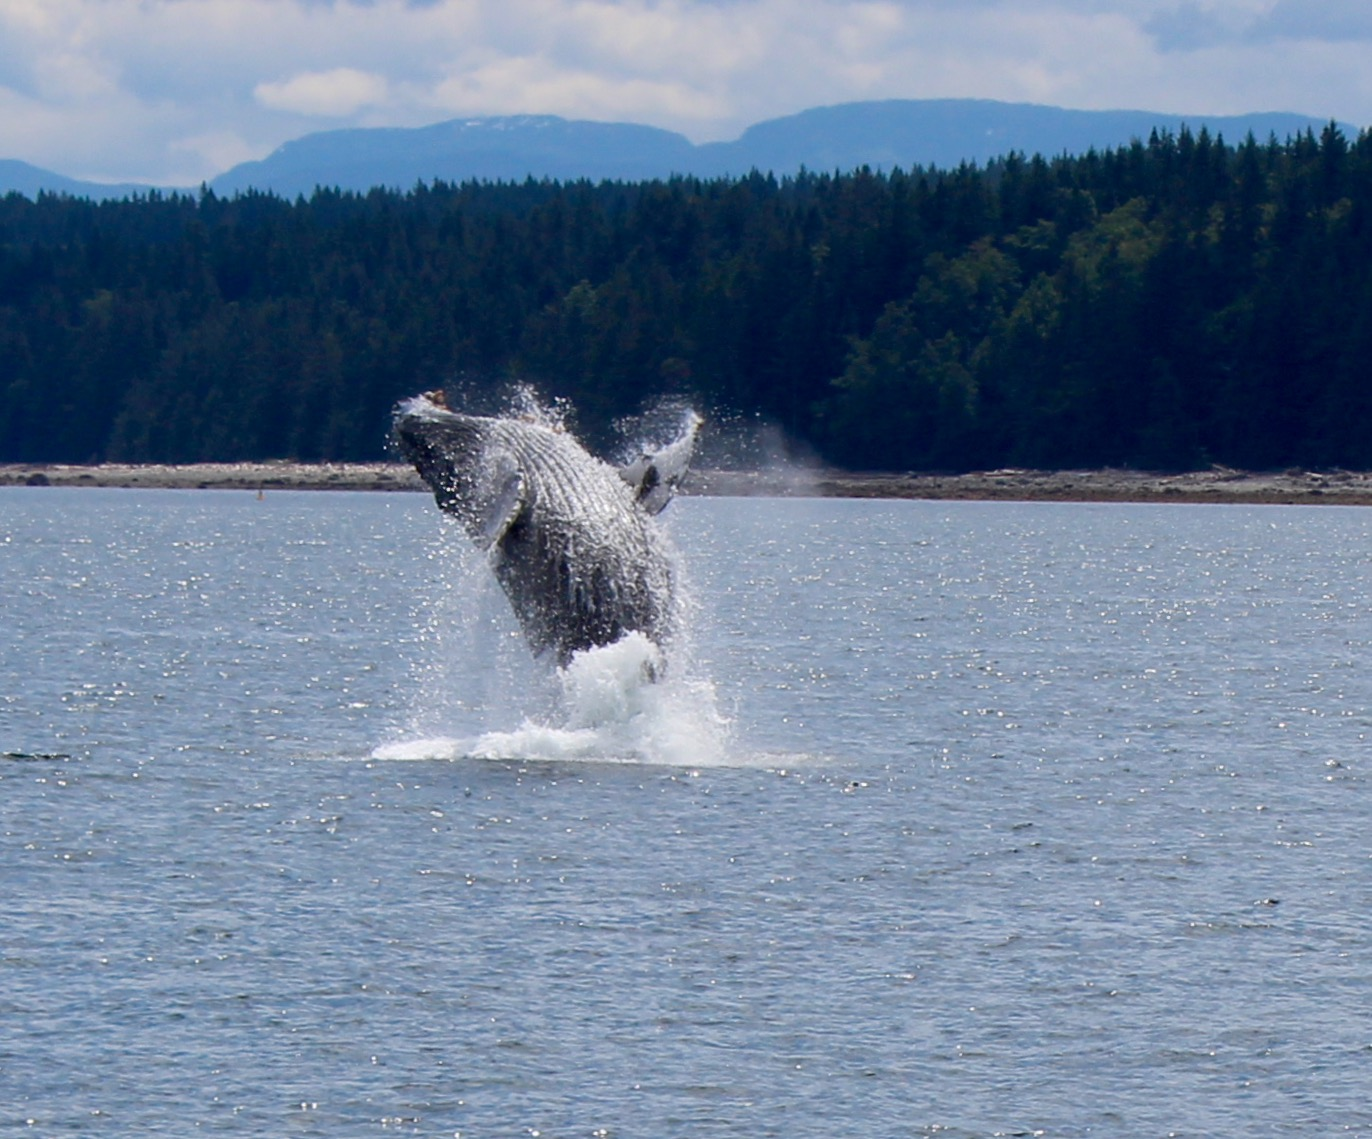 https://res.cloudinary.com/pacific-coastal-cruises-and-tours/image/upload/v1600896190/Wildlife_Whales_2_qvmh9t.jpg